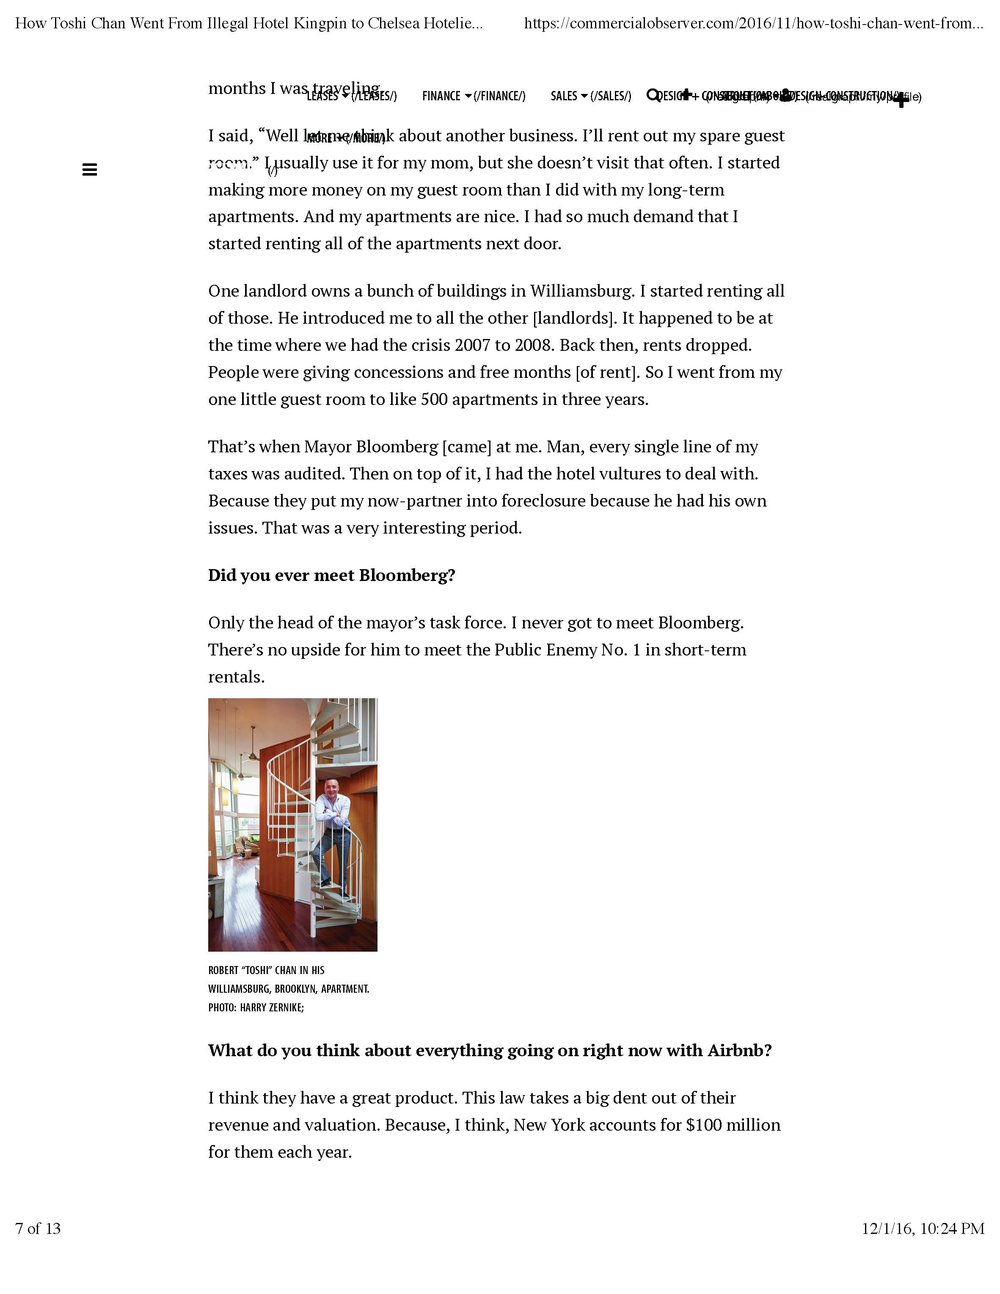 How Toshi Chan Went From Illegal Hotel Kingpin to Chelsea Hotelier _ Commercial Observer_Page_07.jpg